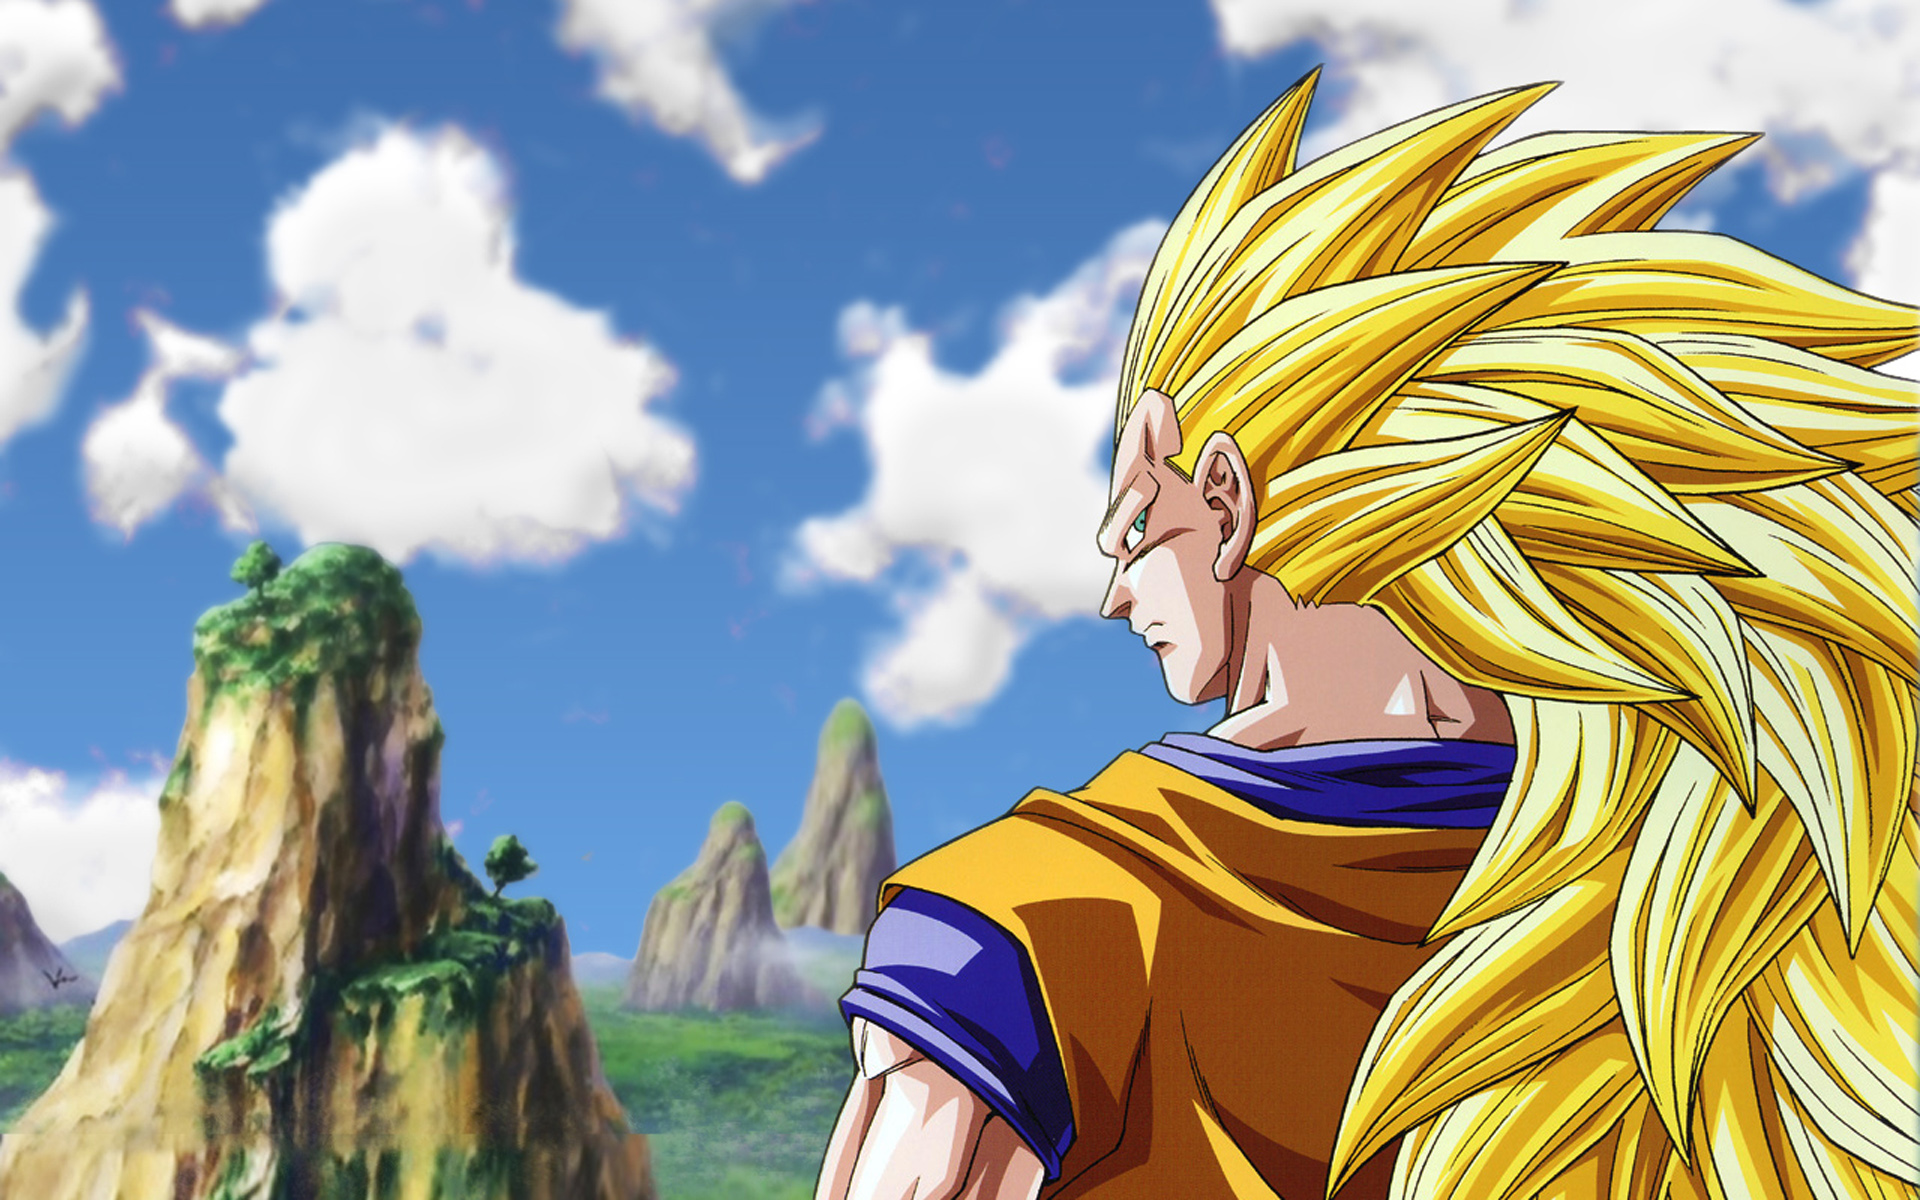 de Informacin   Super Megapost de Wallpapers Full HD Dragon Ball Z 1920x1200